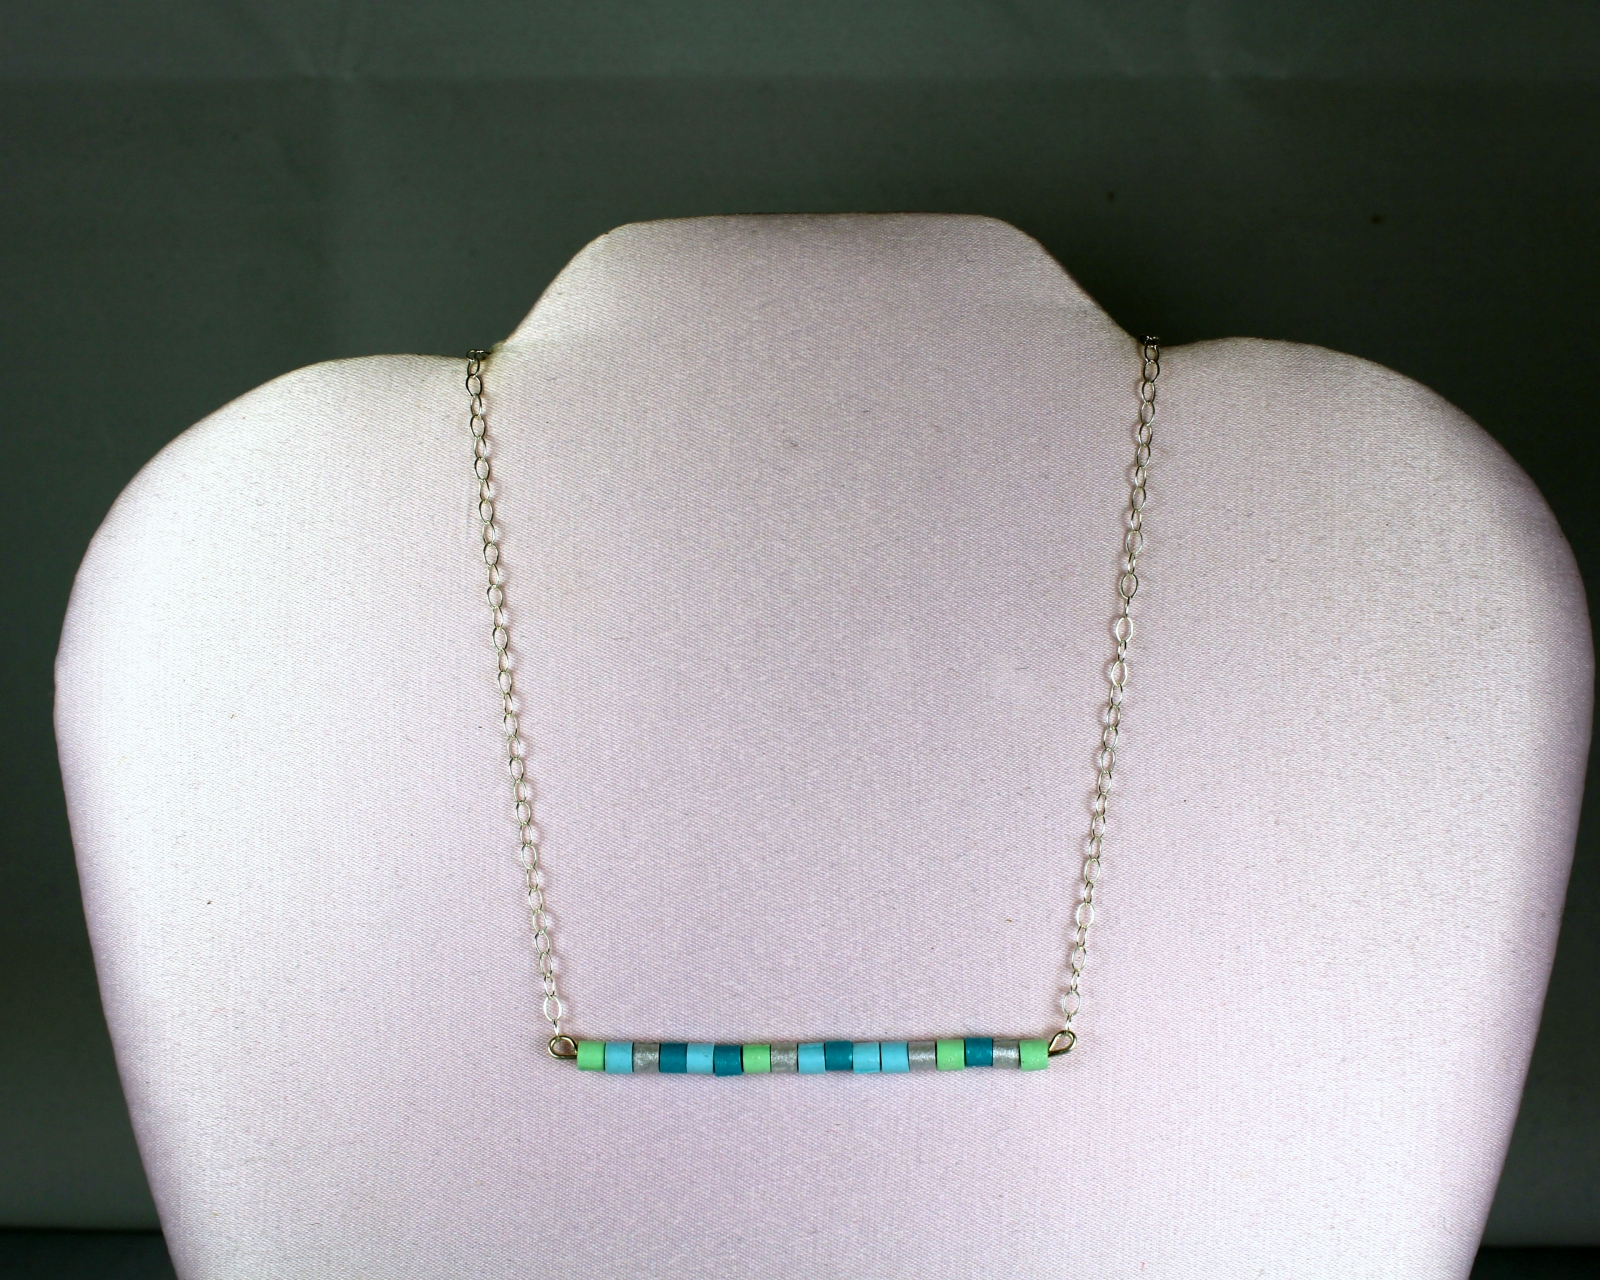 gold bar horizontal beads chain products necklace gemstone copy line opal dsc kiwi